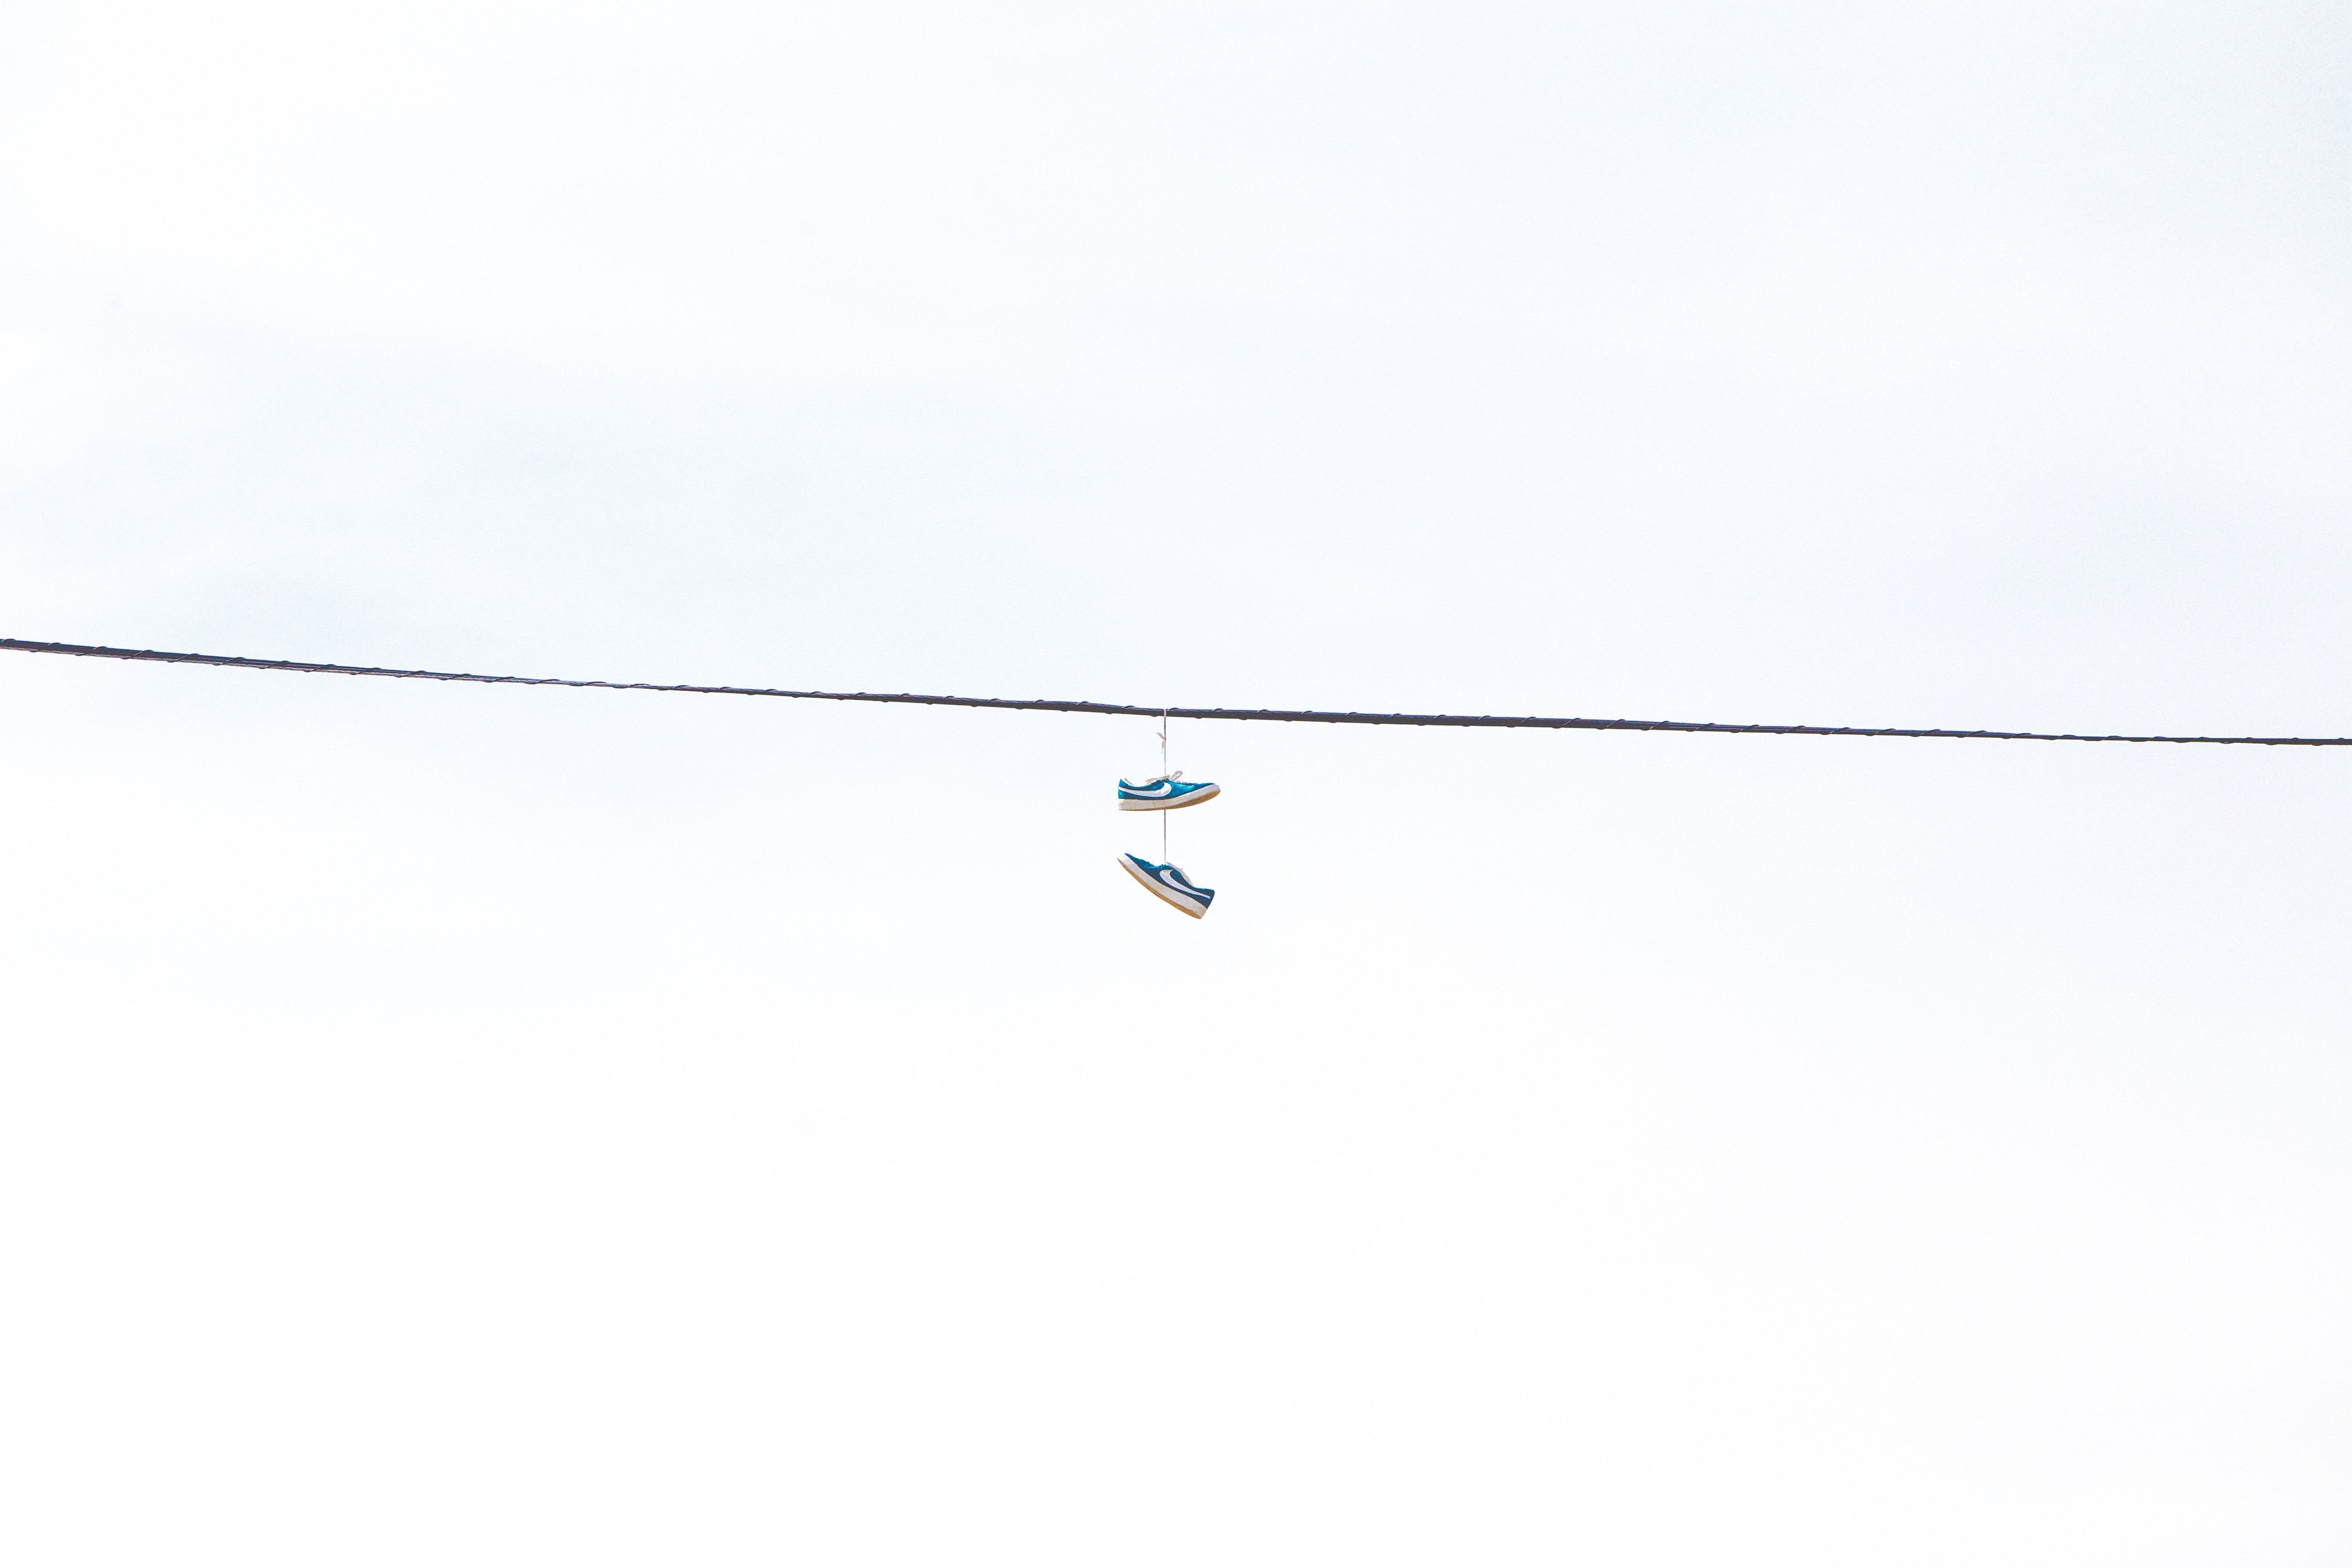 pair of green low-top sneakers hanged on wire